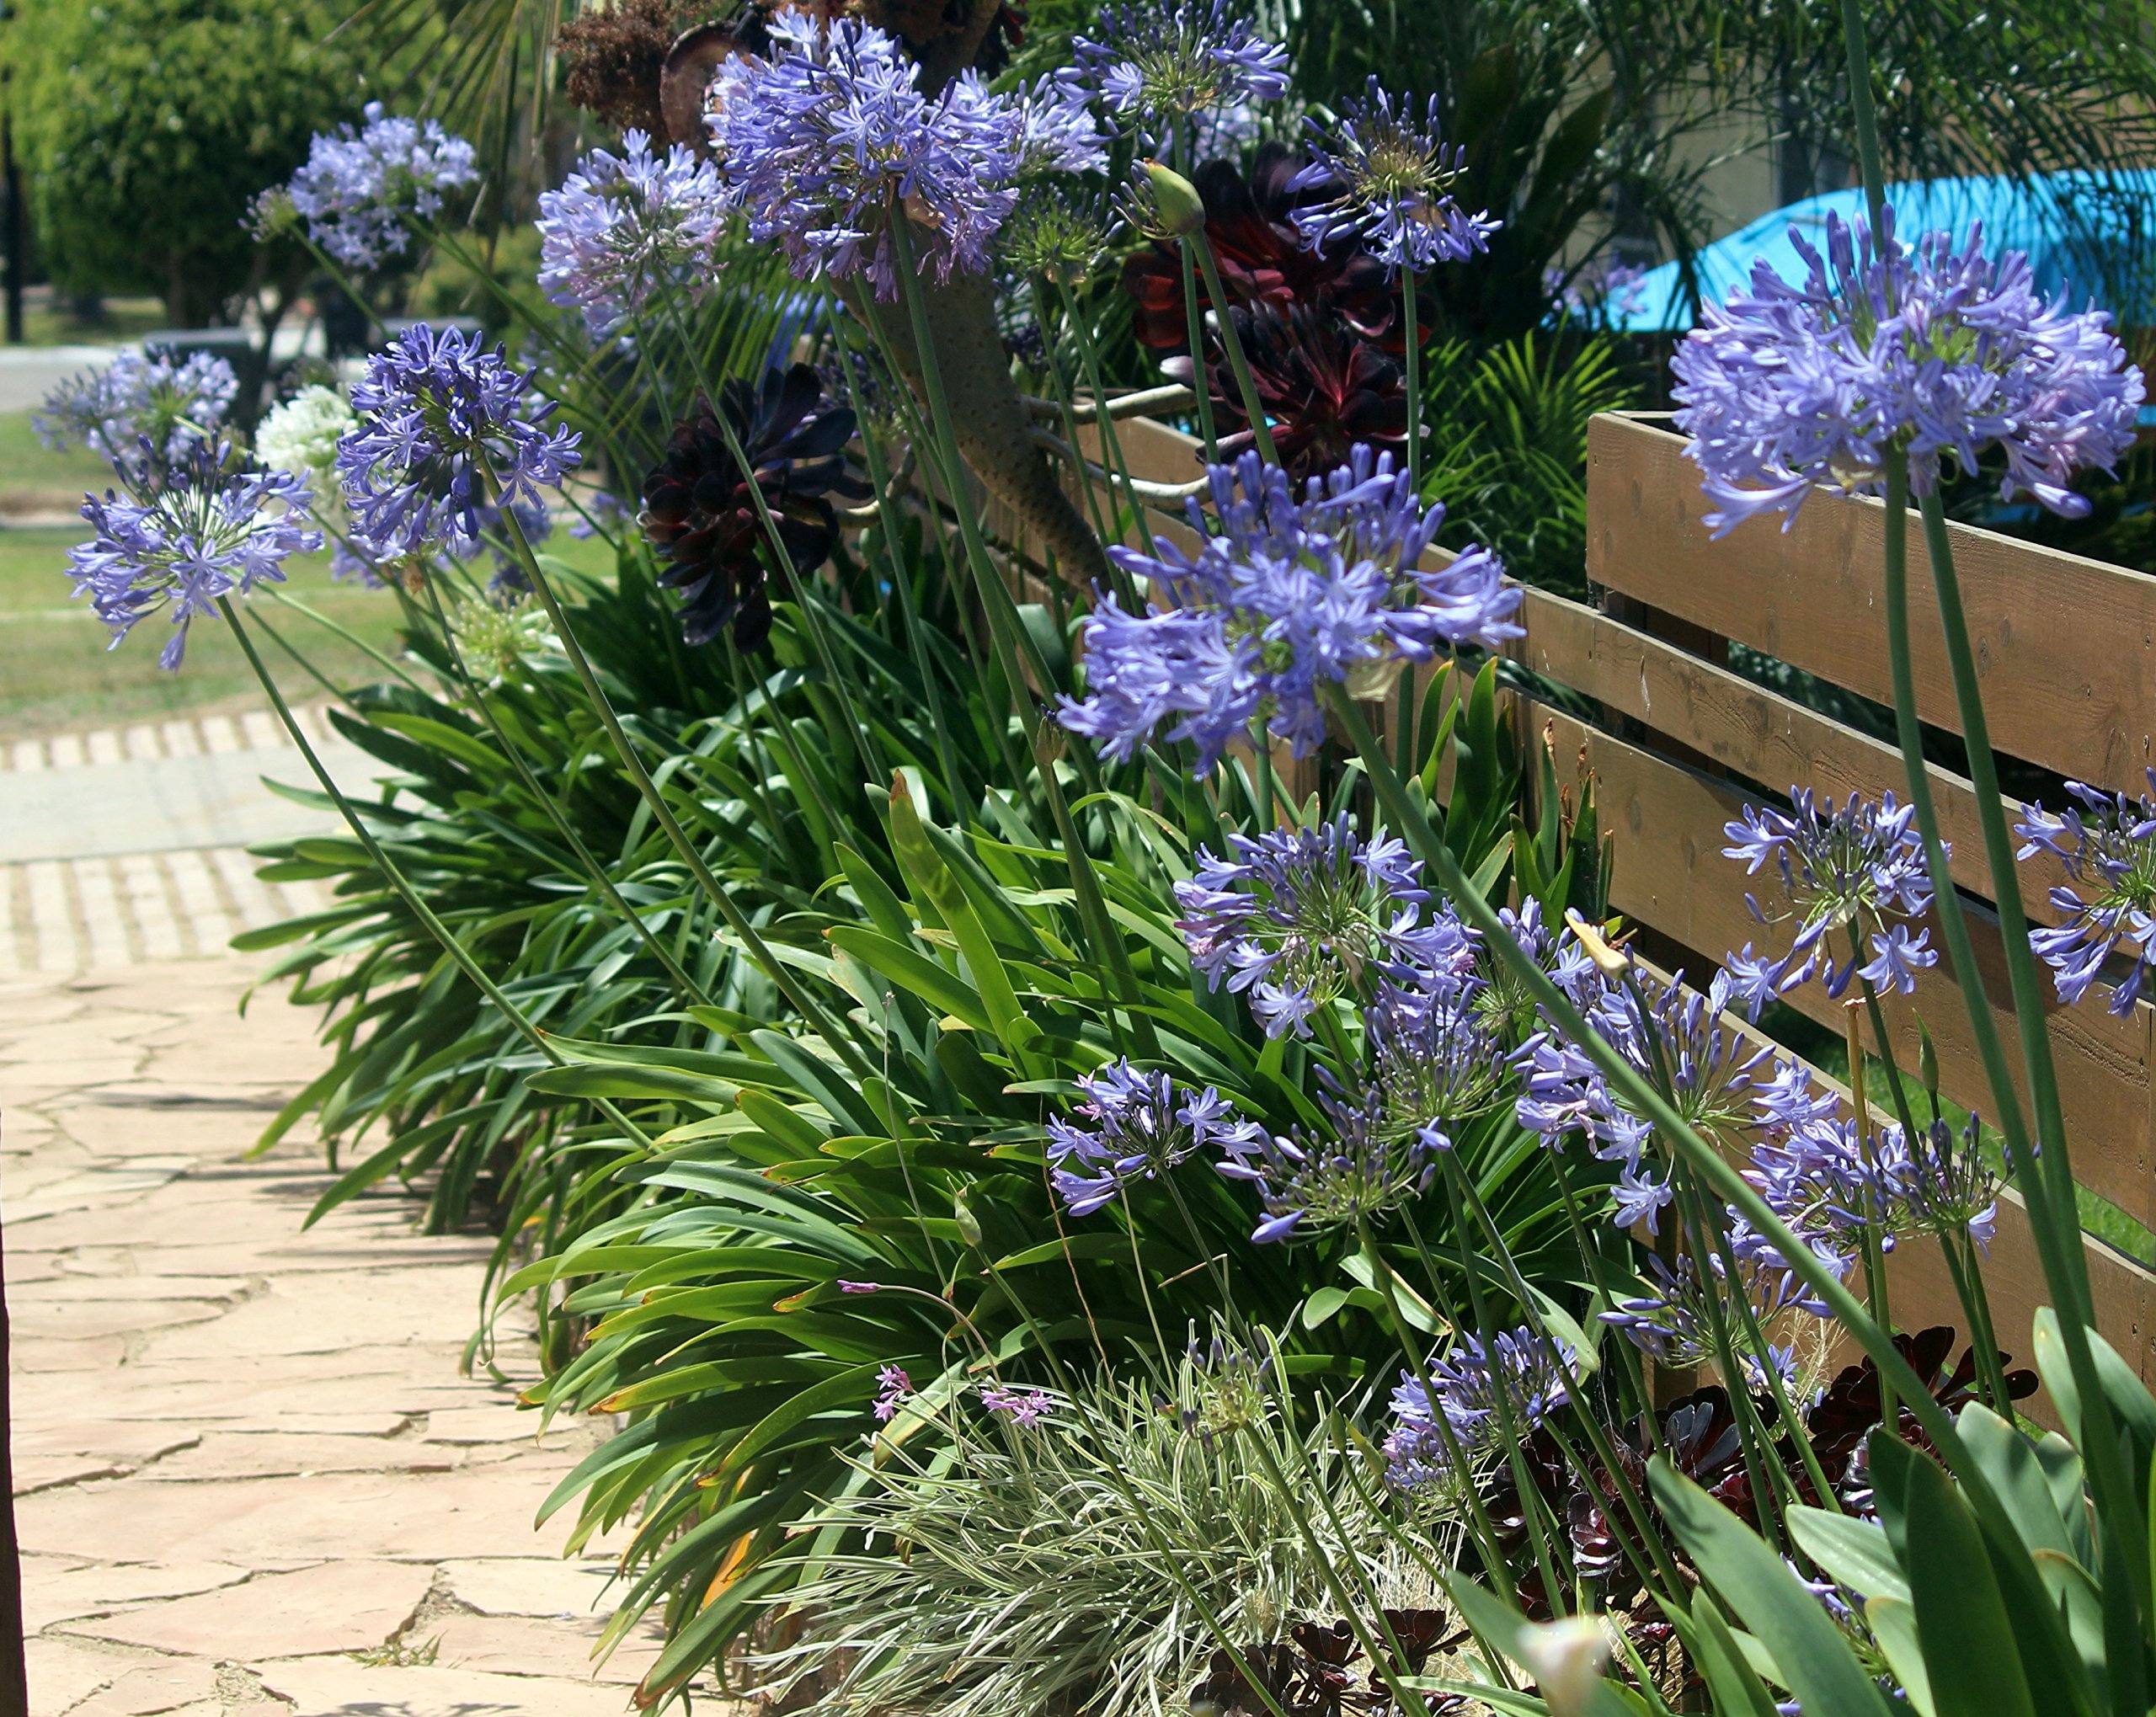 Agapanthus Lily of the Nile Qty 60 Live Plants Groundcover by Florida Foliage (Image #5)